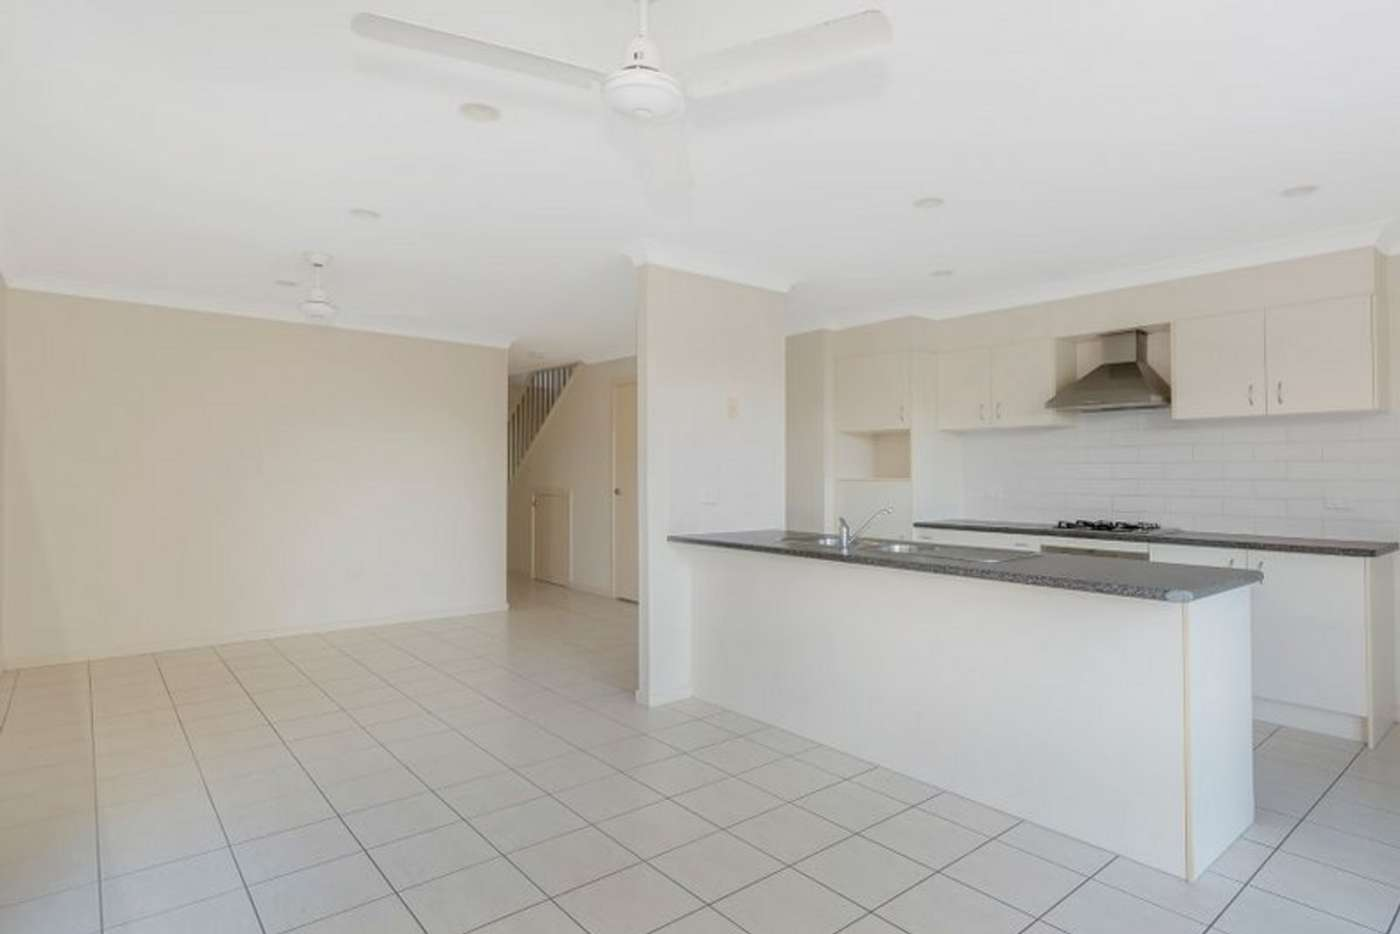 Main view of Homely townhouse listing, 4/5 Bailer Street, Coomera QLD 4209